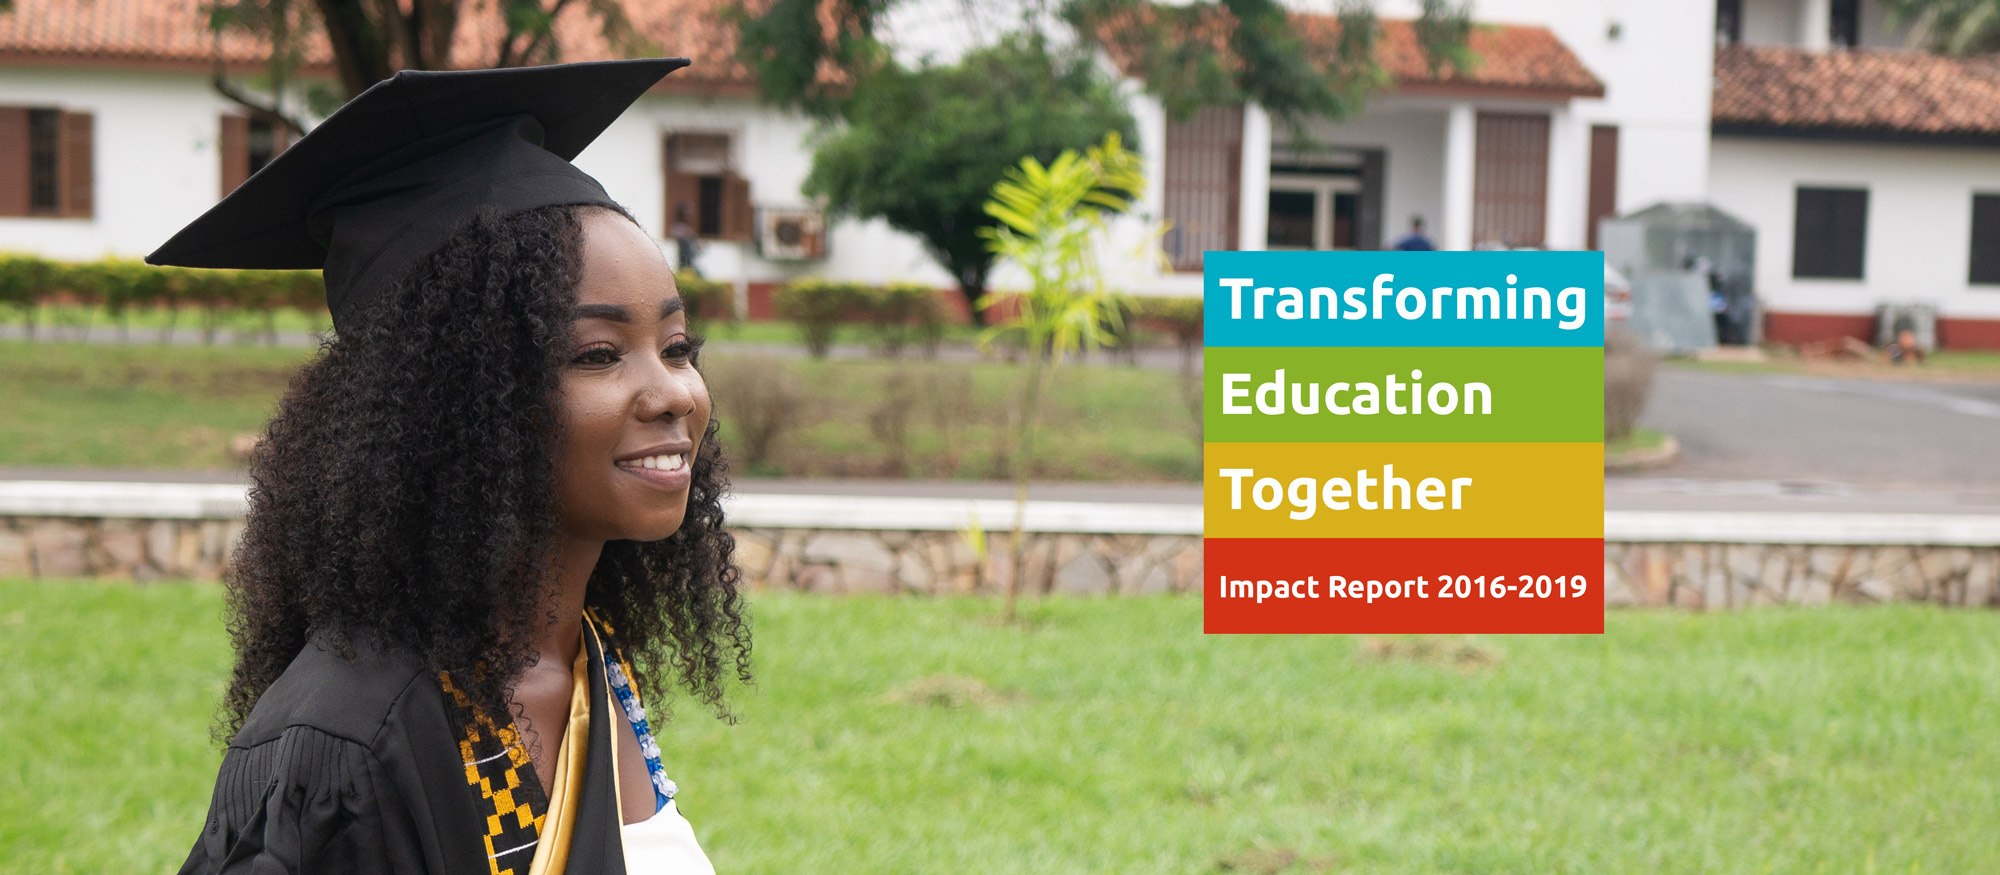 Transforming Education Together Impact Report 2016-2019